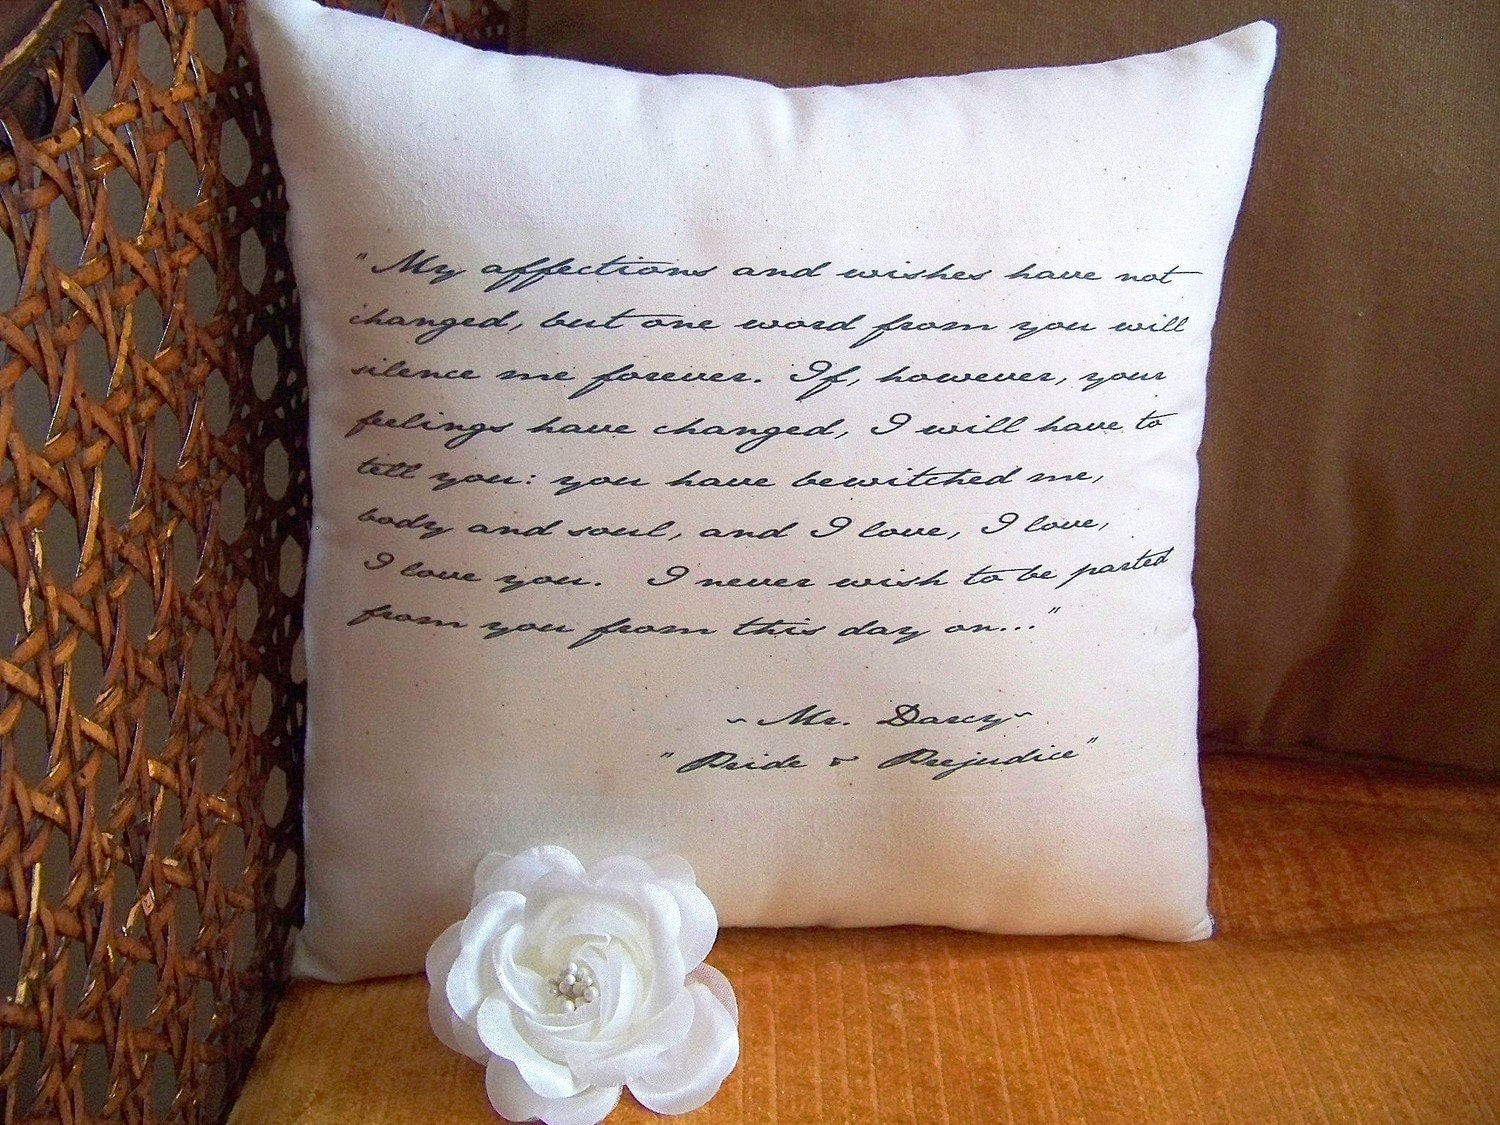 Simply Jane-Jane Austen-Pride and Prejudice-Mr Darcy's Declaration-10 x 10 Quotation  Pillow-Black Toile